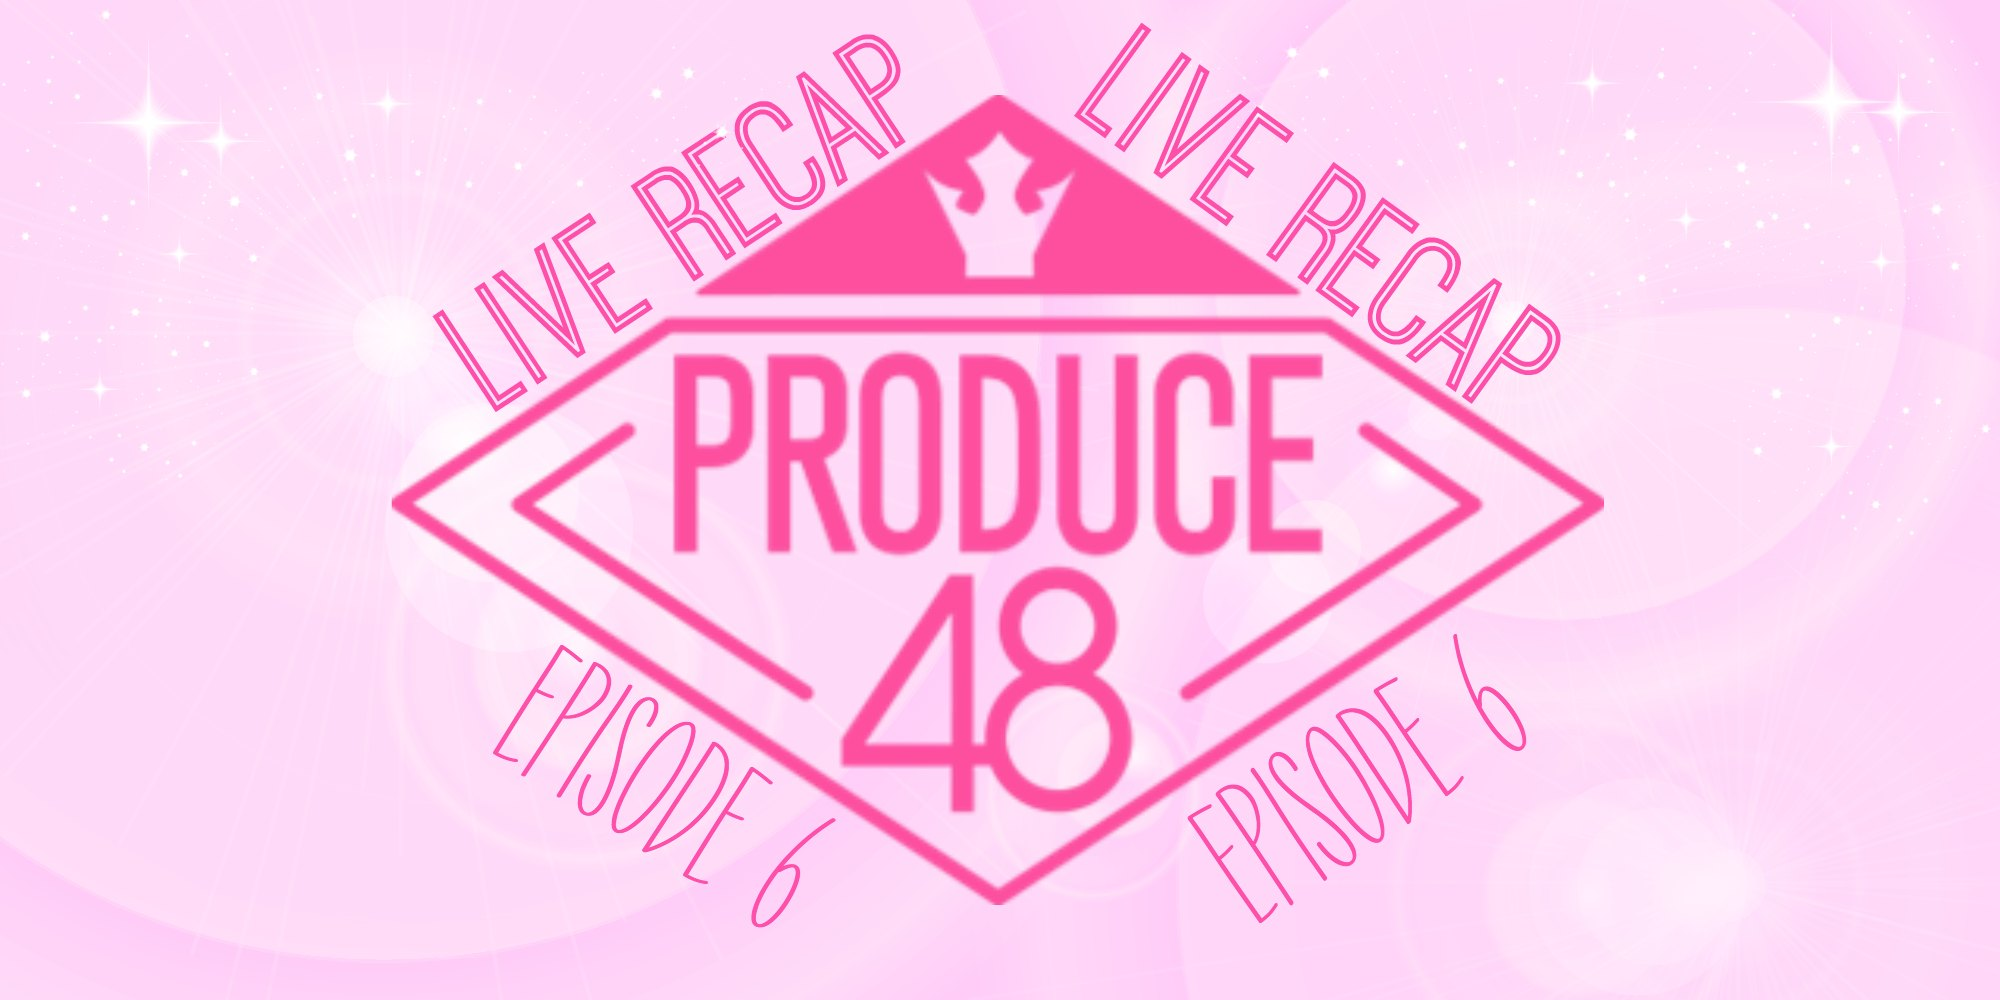 Episode 6 live recap and English translation for the K-Pop variety show Produce 48